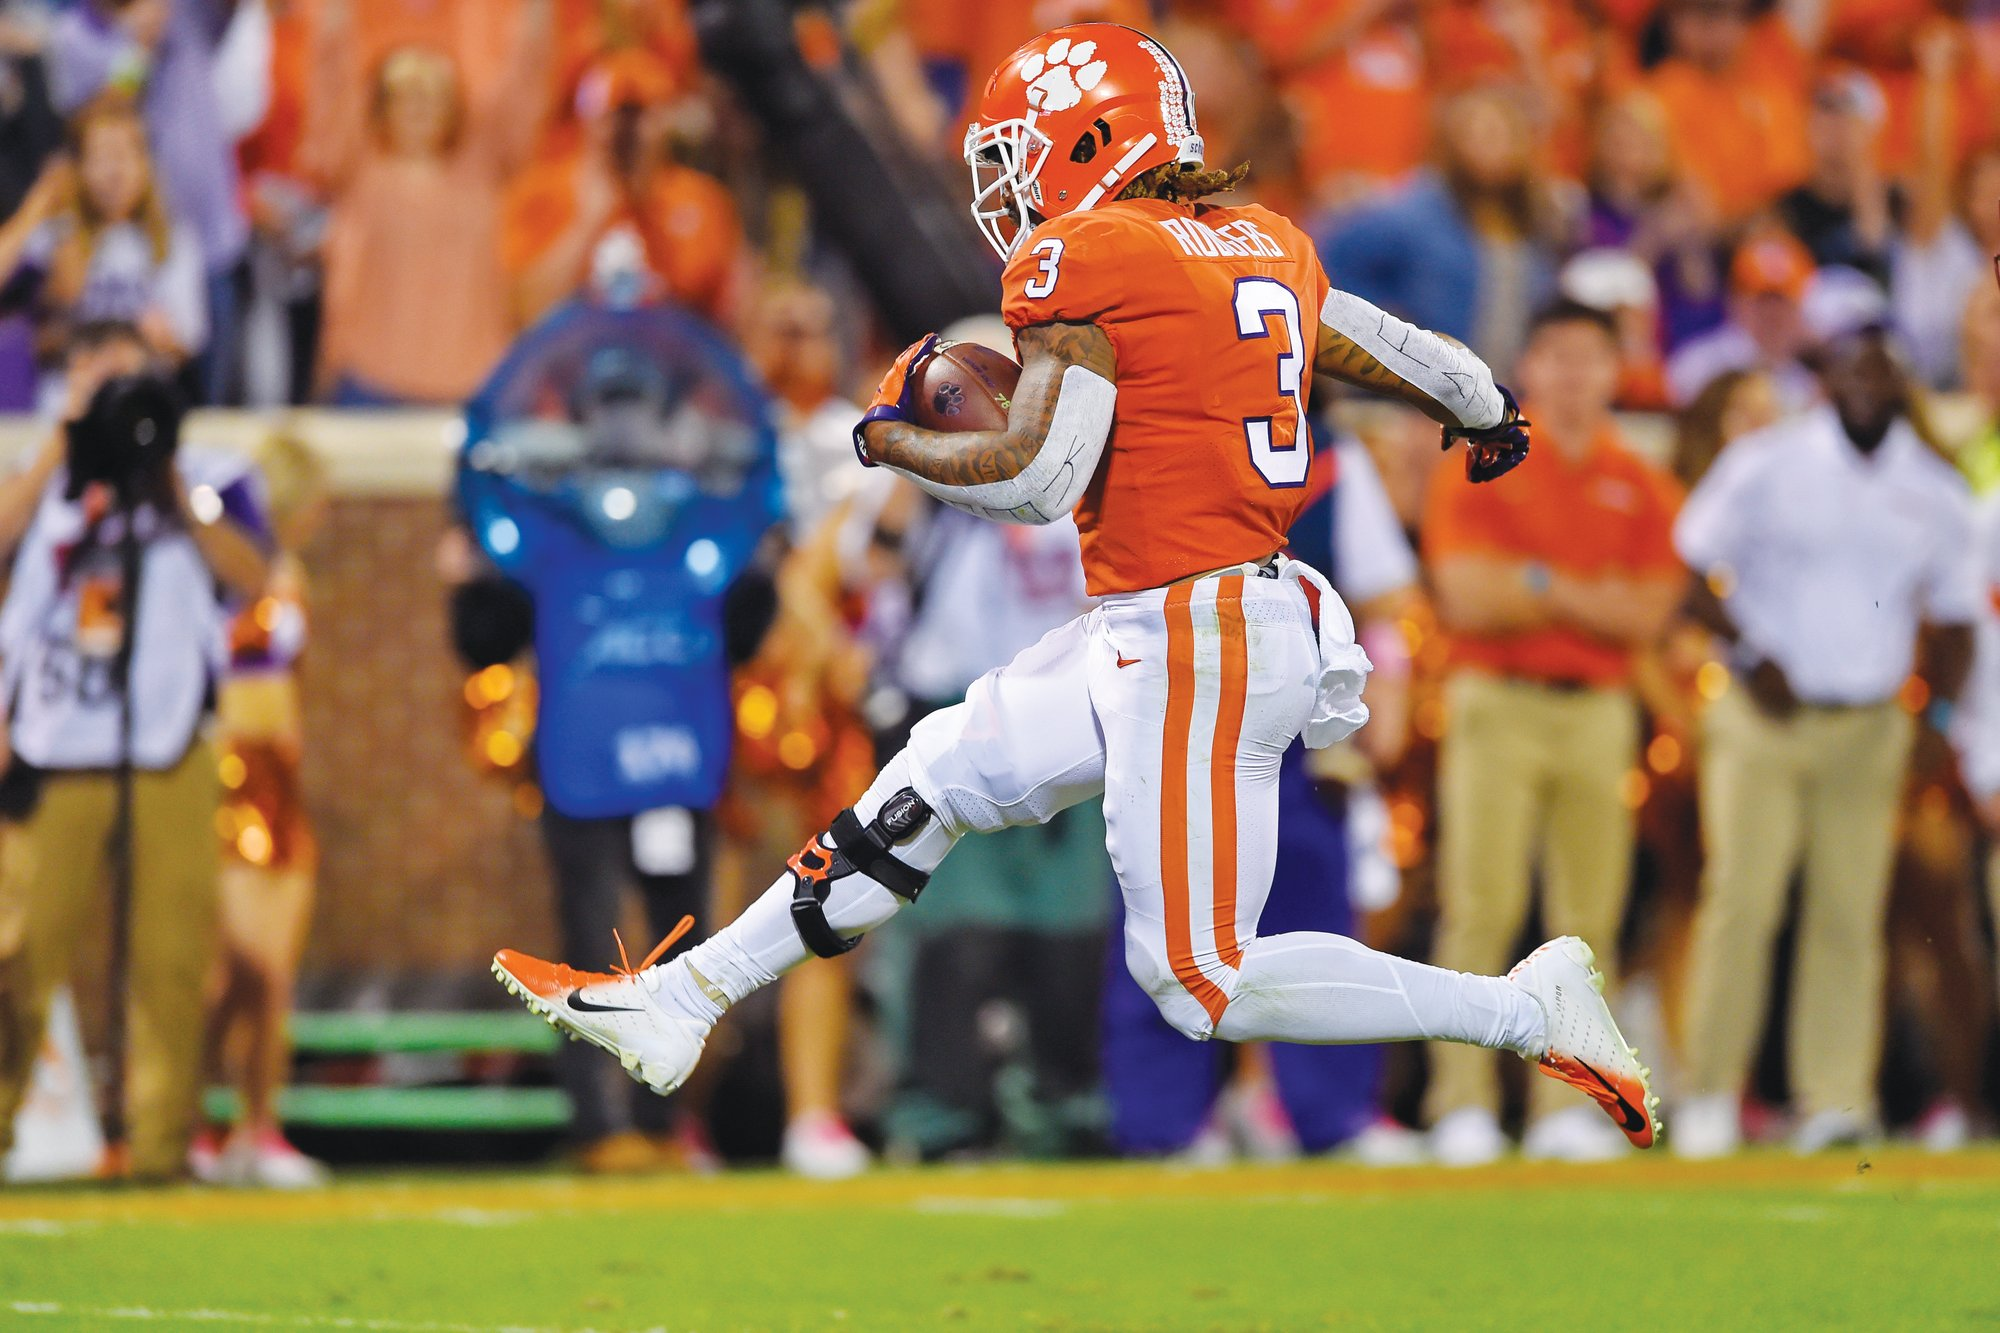 Clemson wide receiver Amari Rodgers runs into the end zone for a touchdown during the Tigers' 59-7 win over Boston College last week. Clemson plays host to Wofford on Saturday.